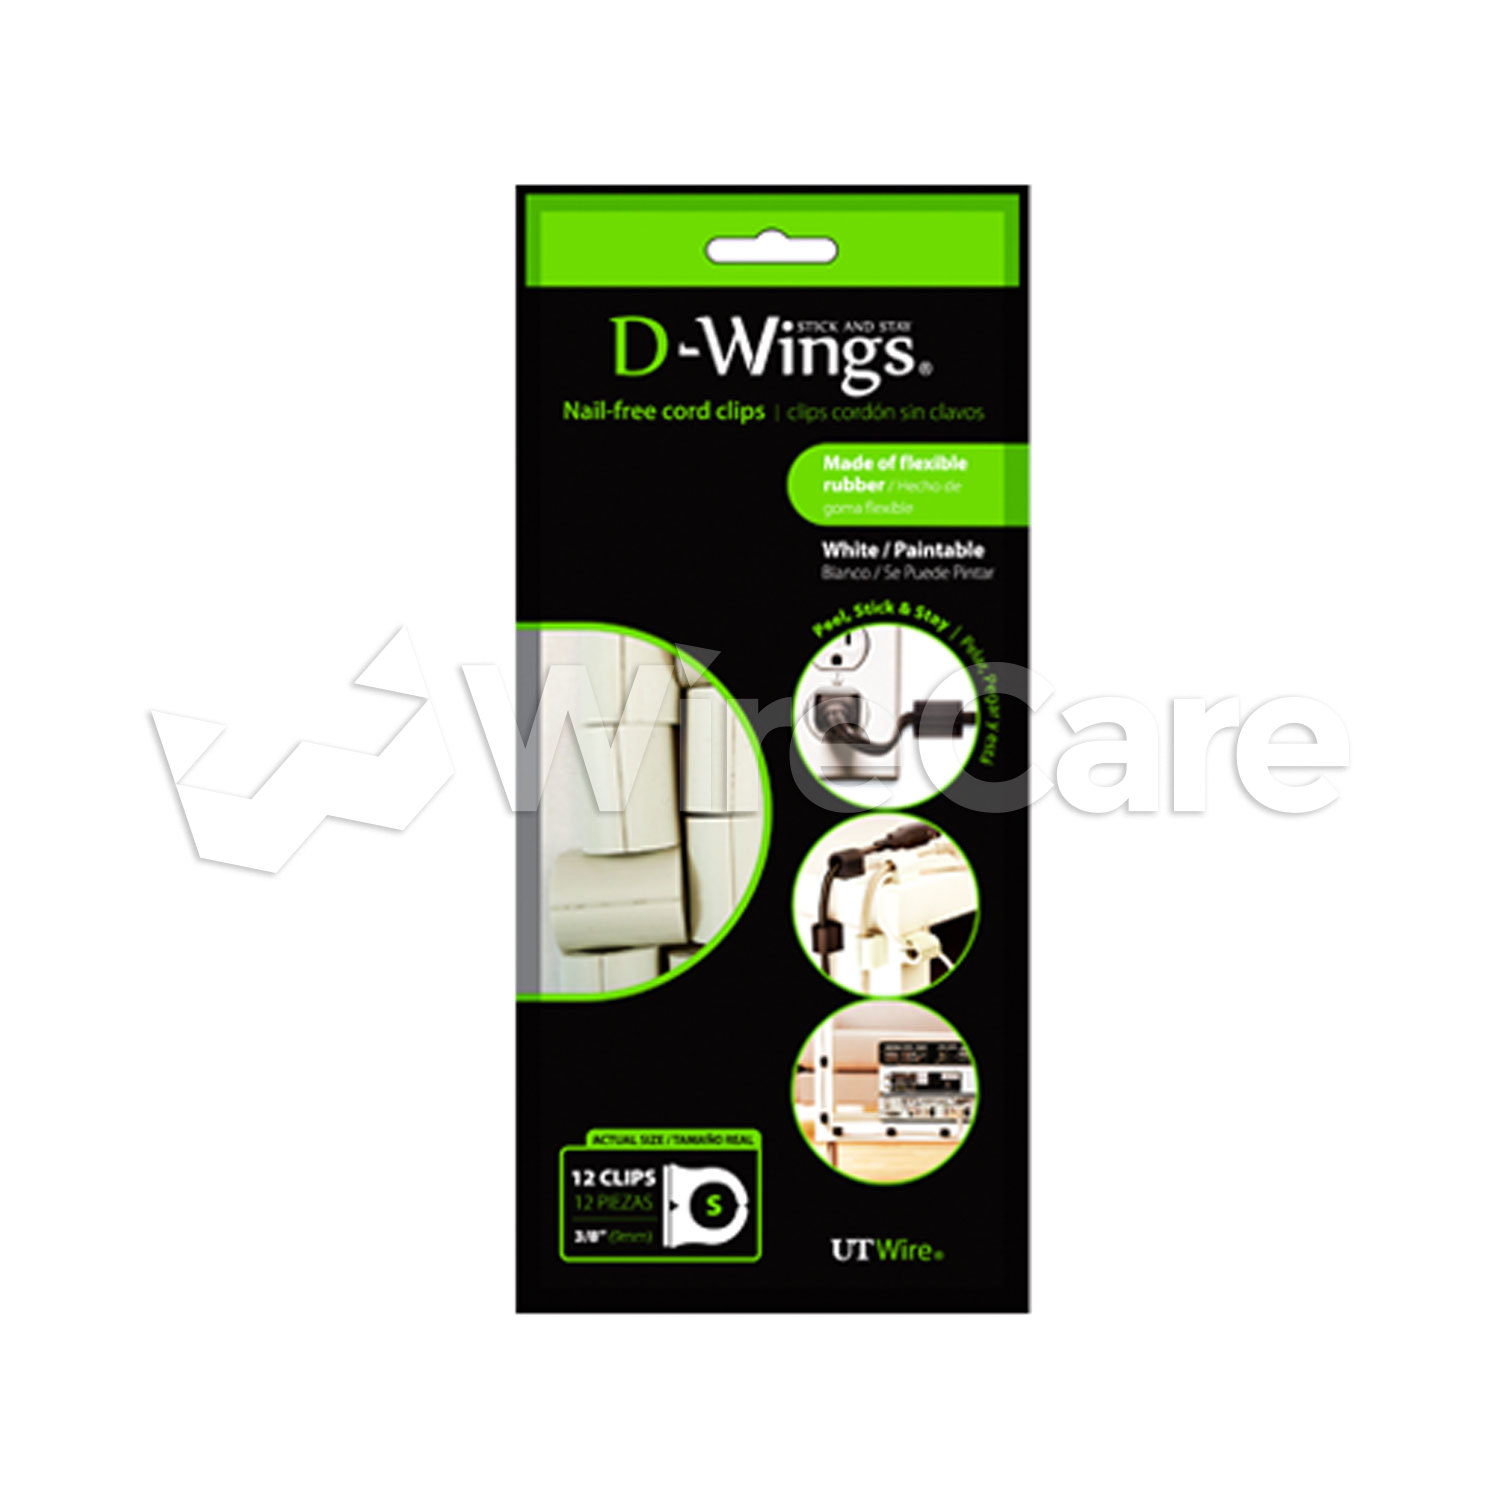 UT Wire - D-Wings Cord Clips, Small, White, 12 pc pk - WireCare.com